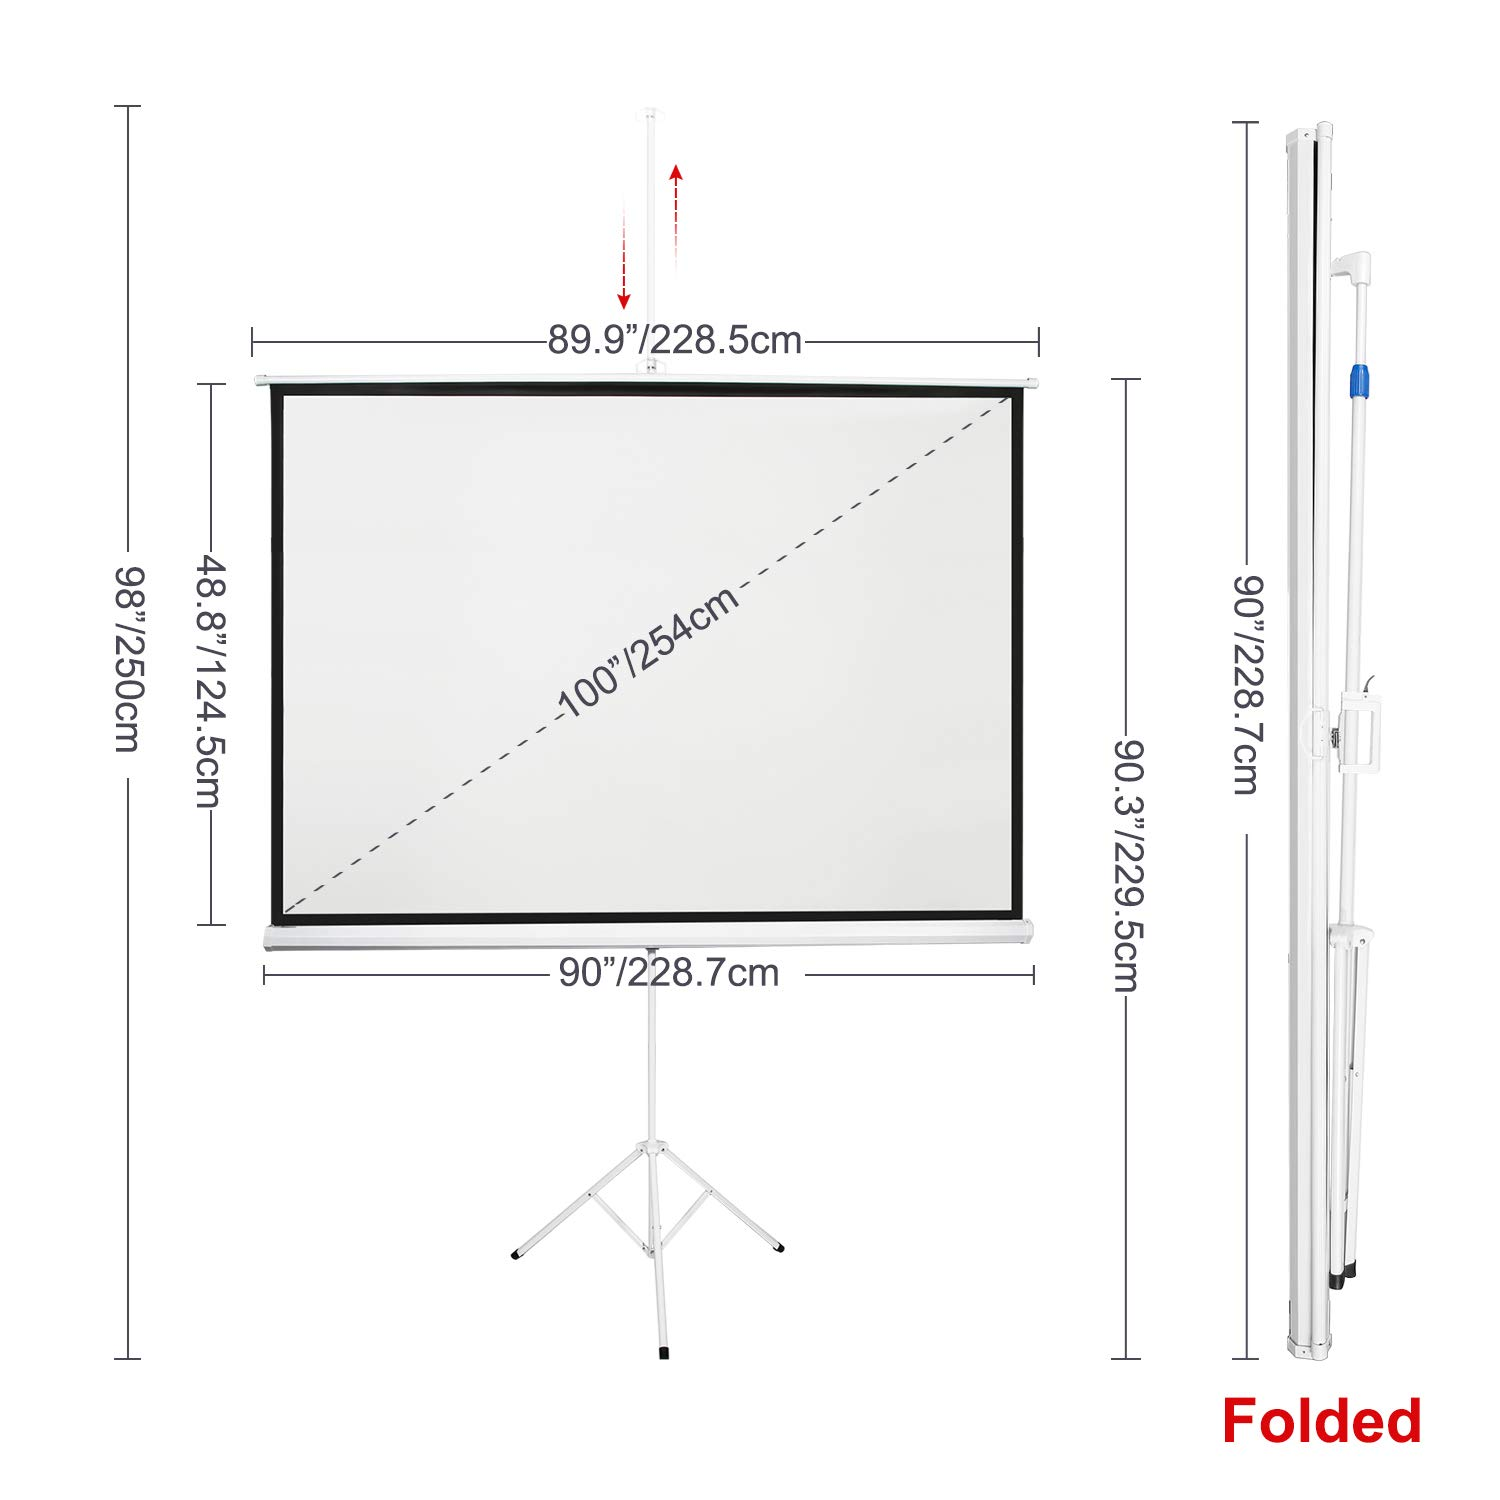 160/° Viewing Angle Indoor Outdoor Foldable Portable Projection Screen 4K HD with Premium Wrinkle-Free Design: 1.1 Gain Neewer 100-inch 16:9 Projector Screen with Stand No Carrying Bag